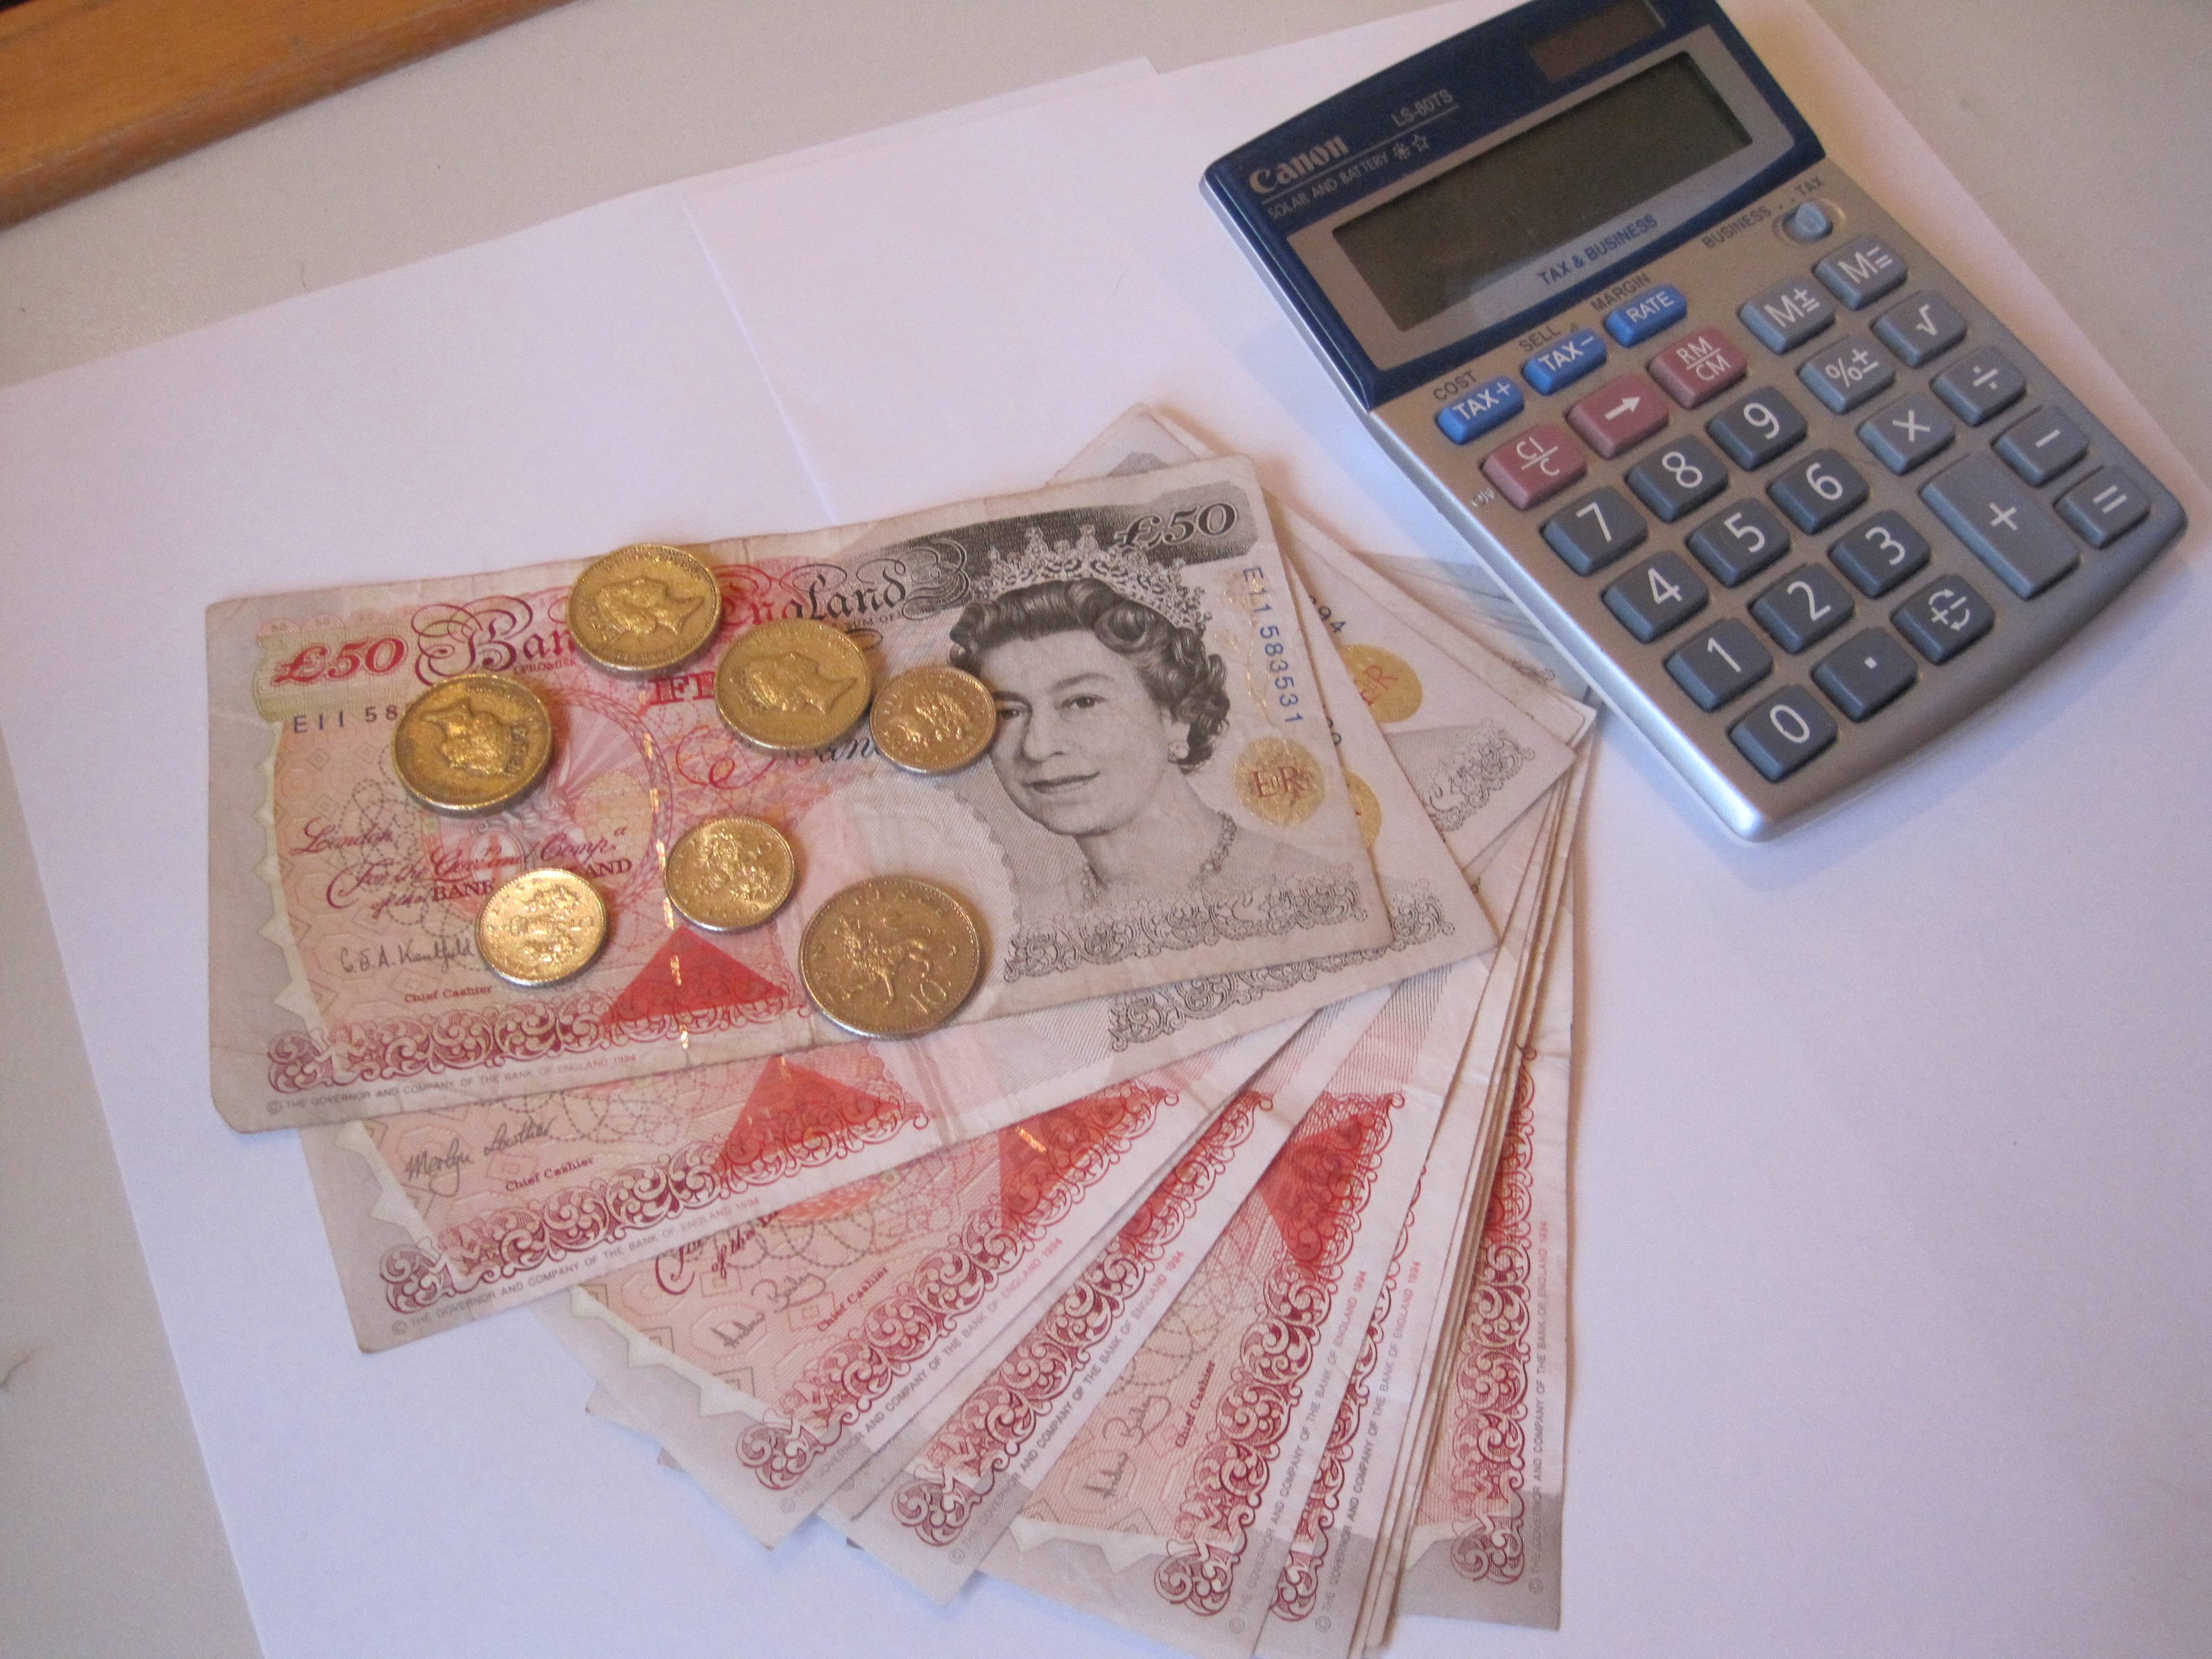 More SMEs turning to alternative finance